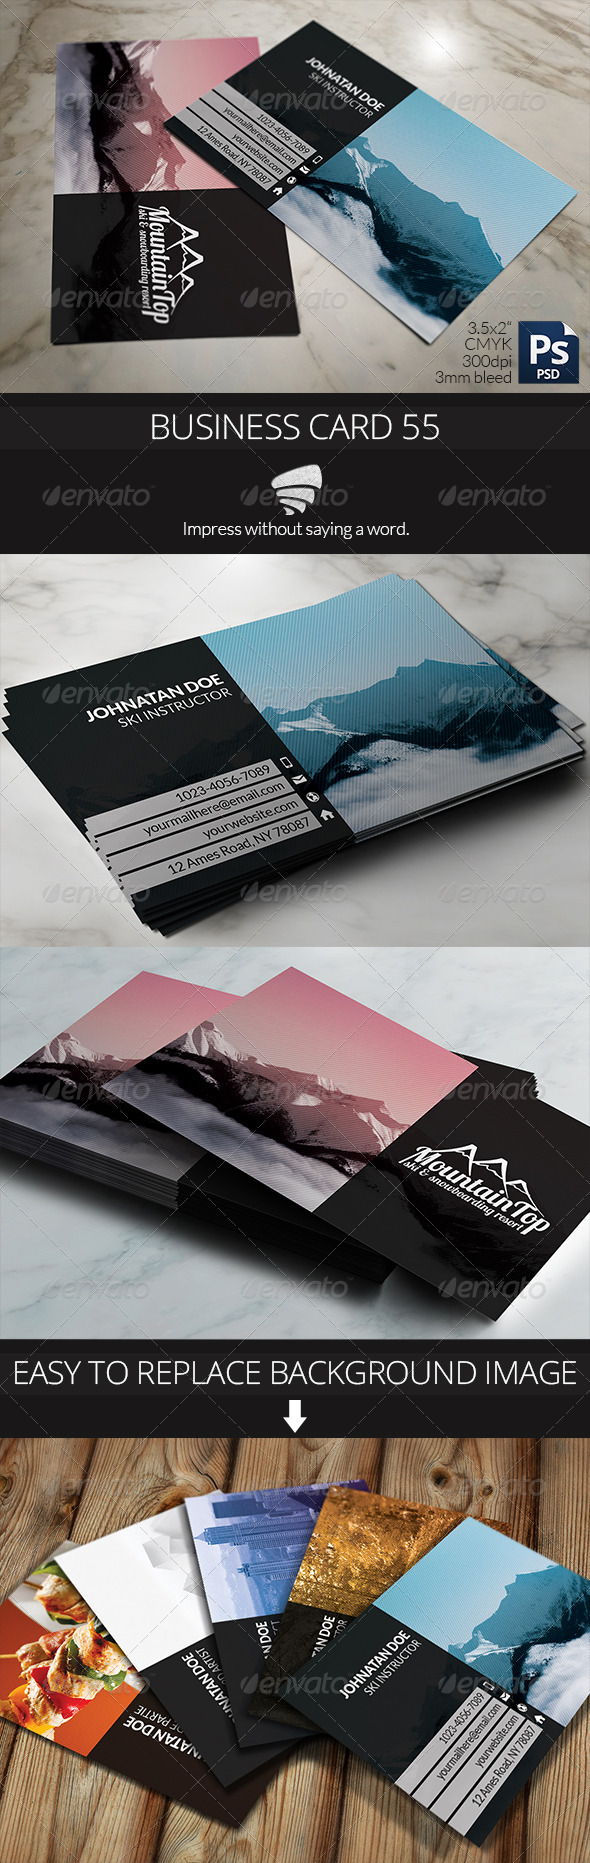 Business Card 55 - Business Cards Print Templates